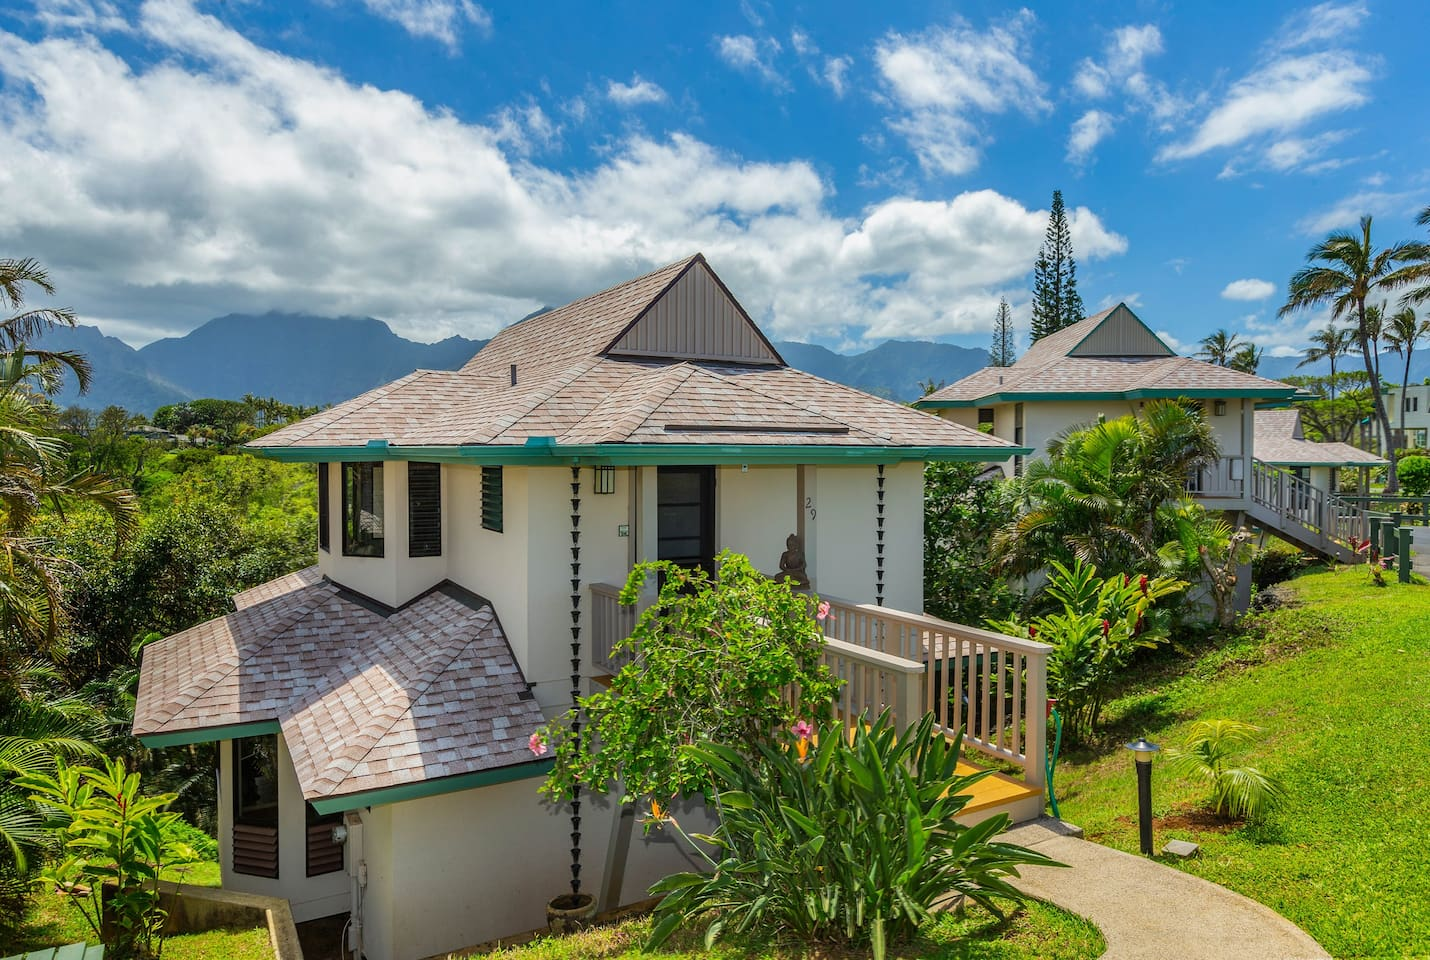 Your ridge-line retreat faces the Pacific with a North Shore mountain backdrop. Walking distance to Pu'u Poa beach along the bay and Hideaways beach which offers great snorkeling and coastal views